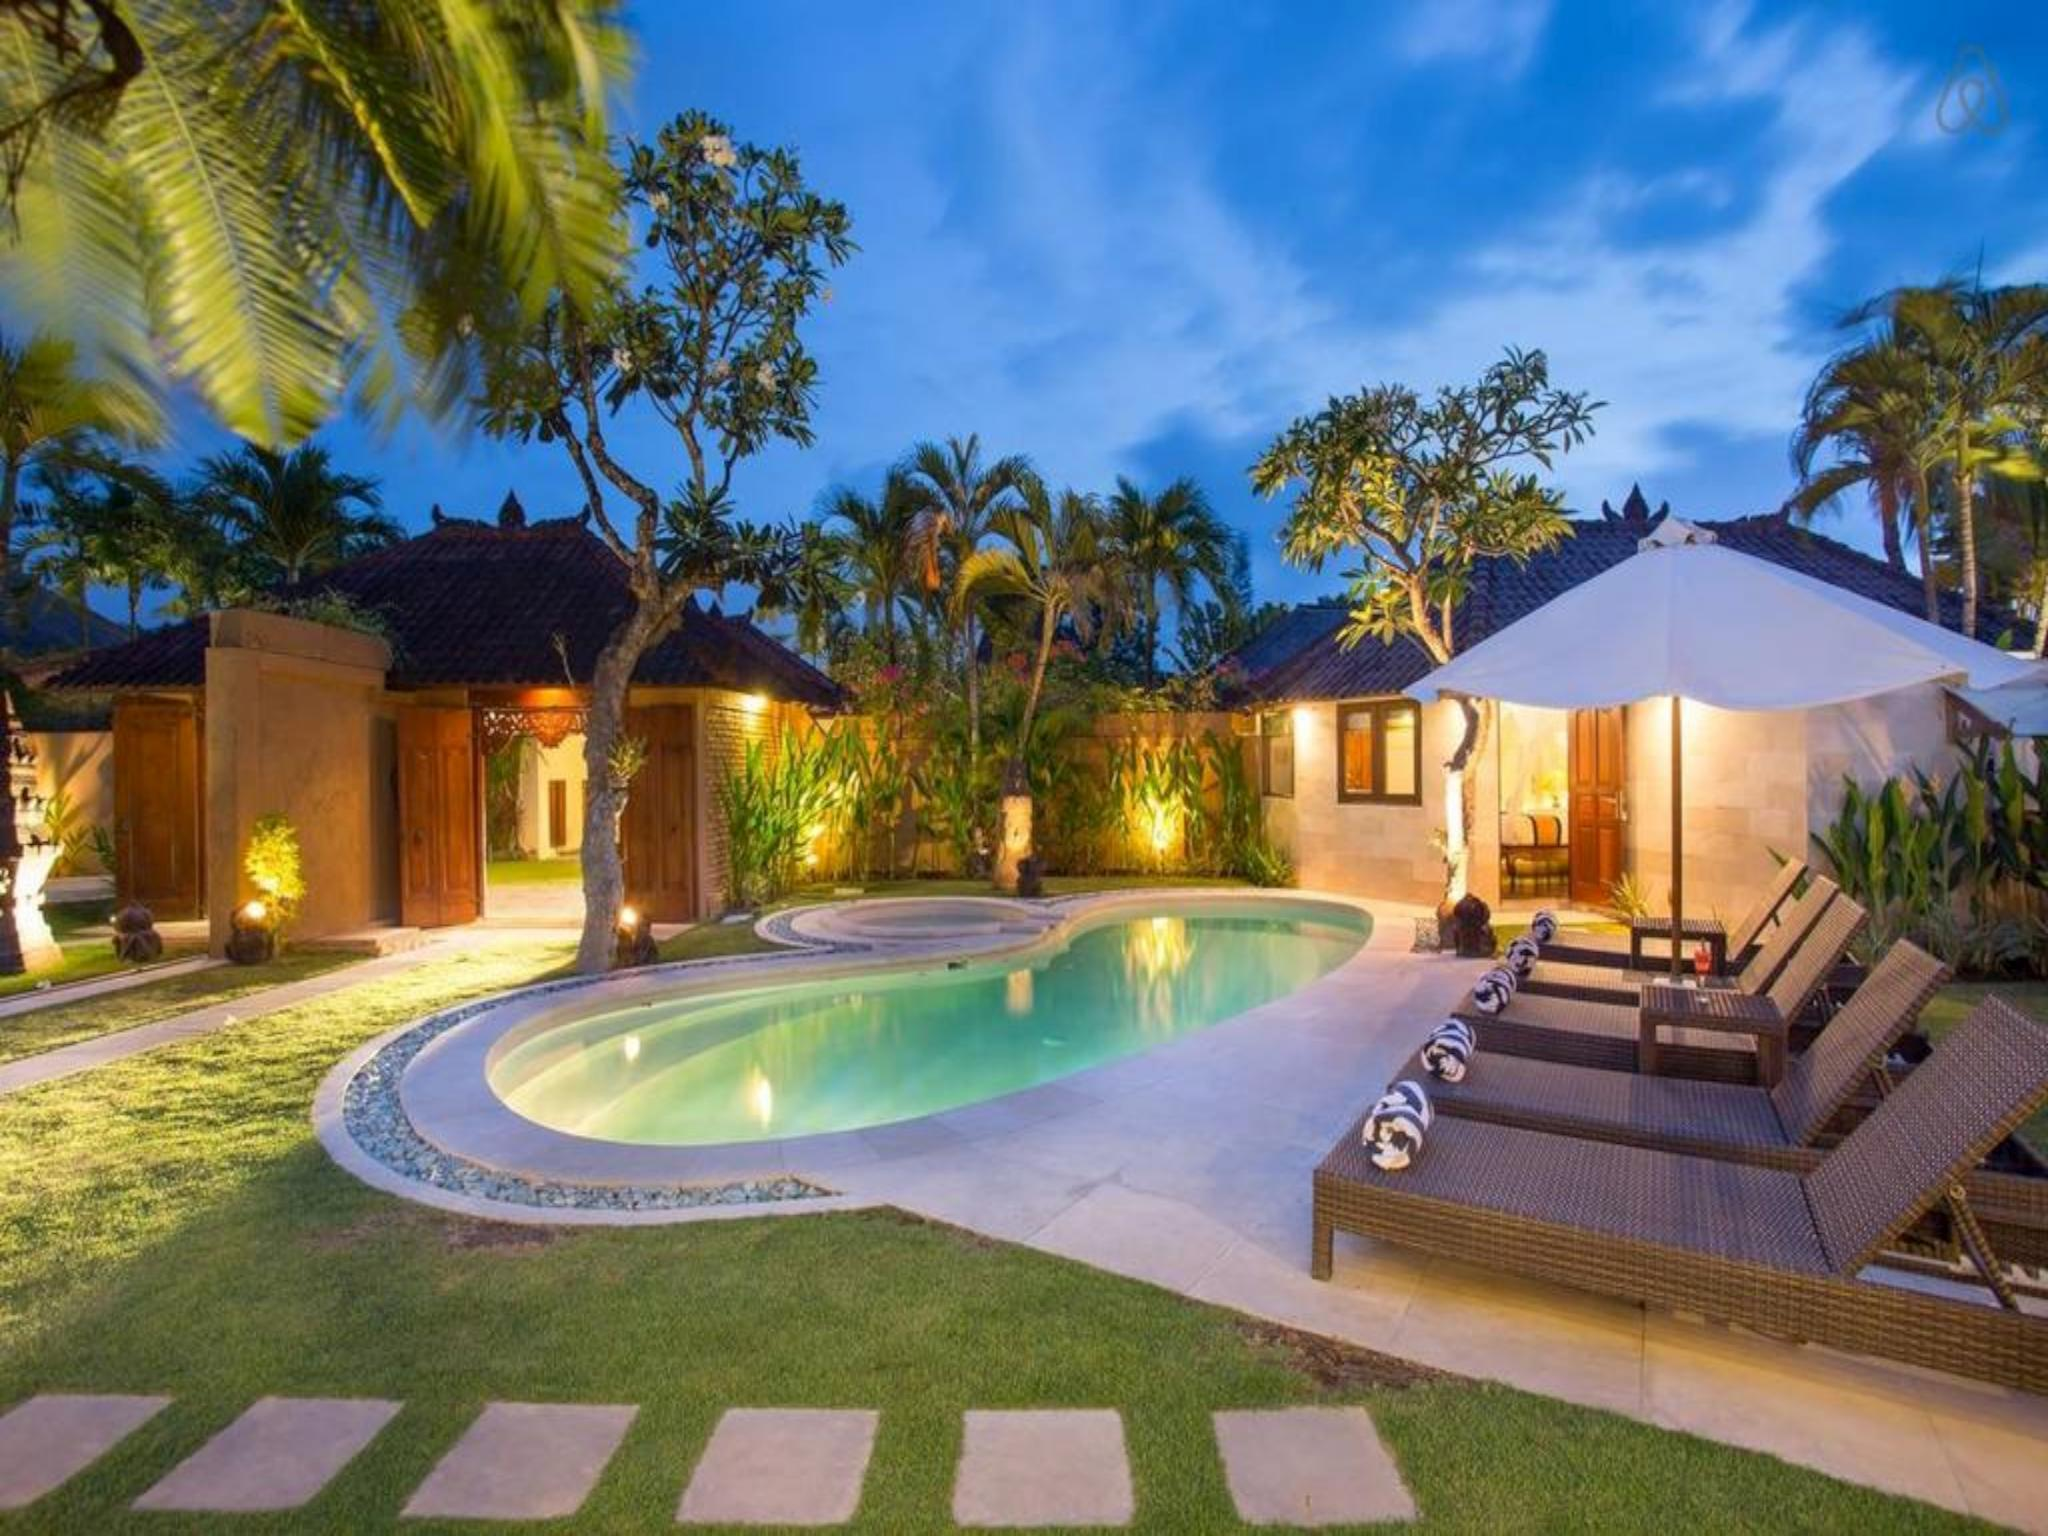 About 4 BDR Villa Private Pool In Seminyak